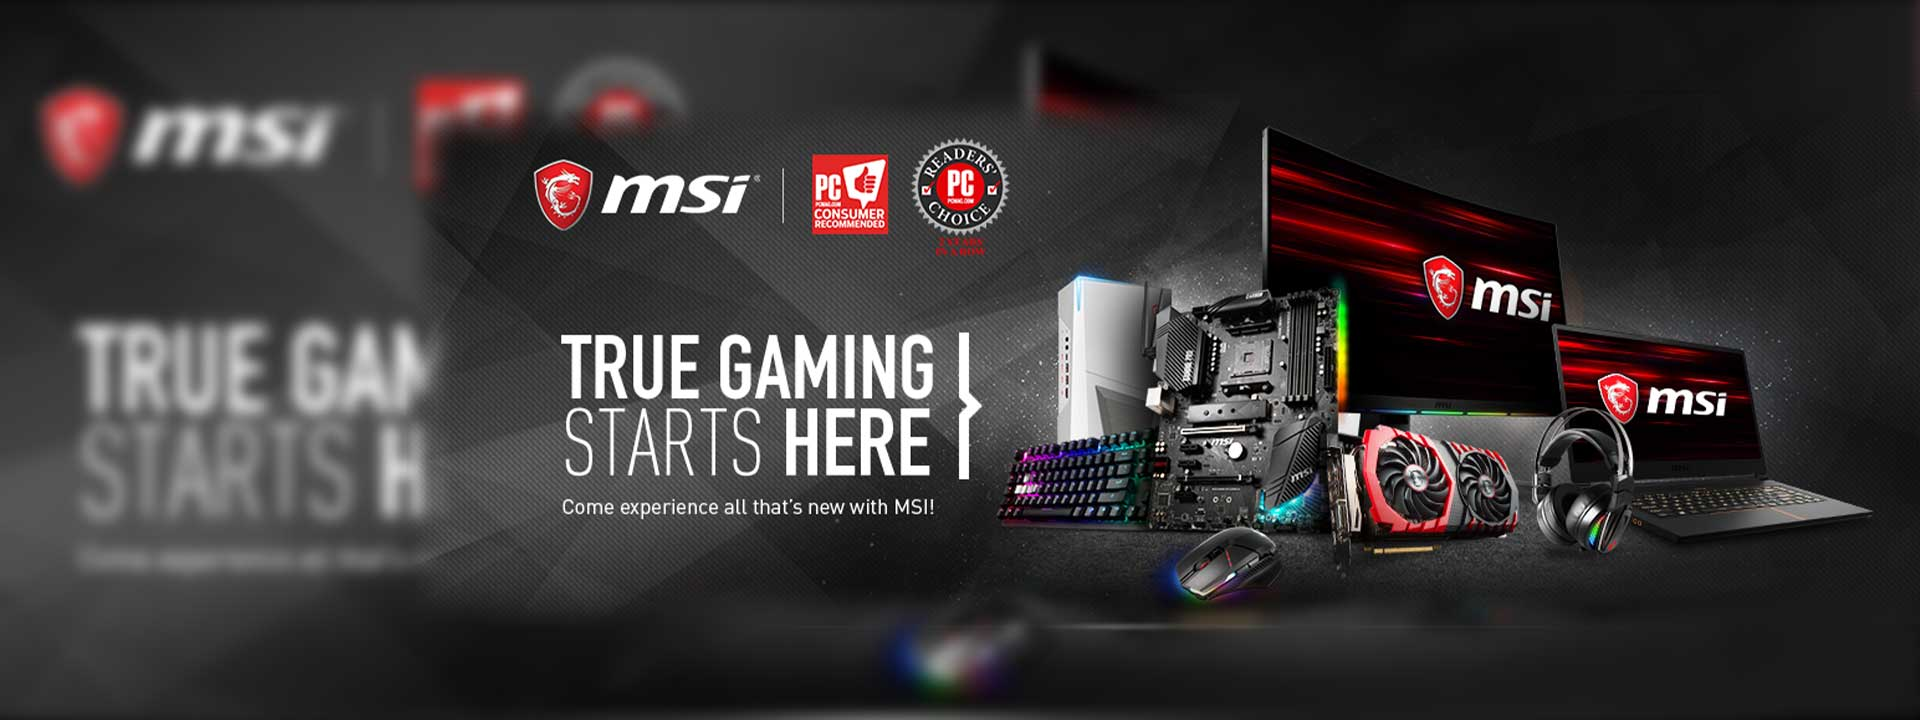 aliteq-msi-products-series-001-B-aliteq-website-banner